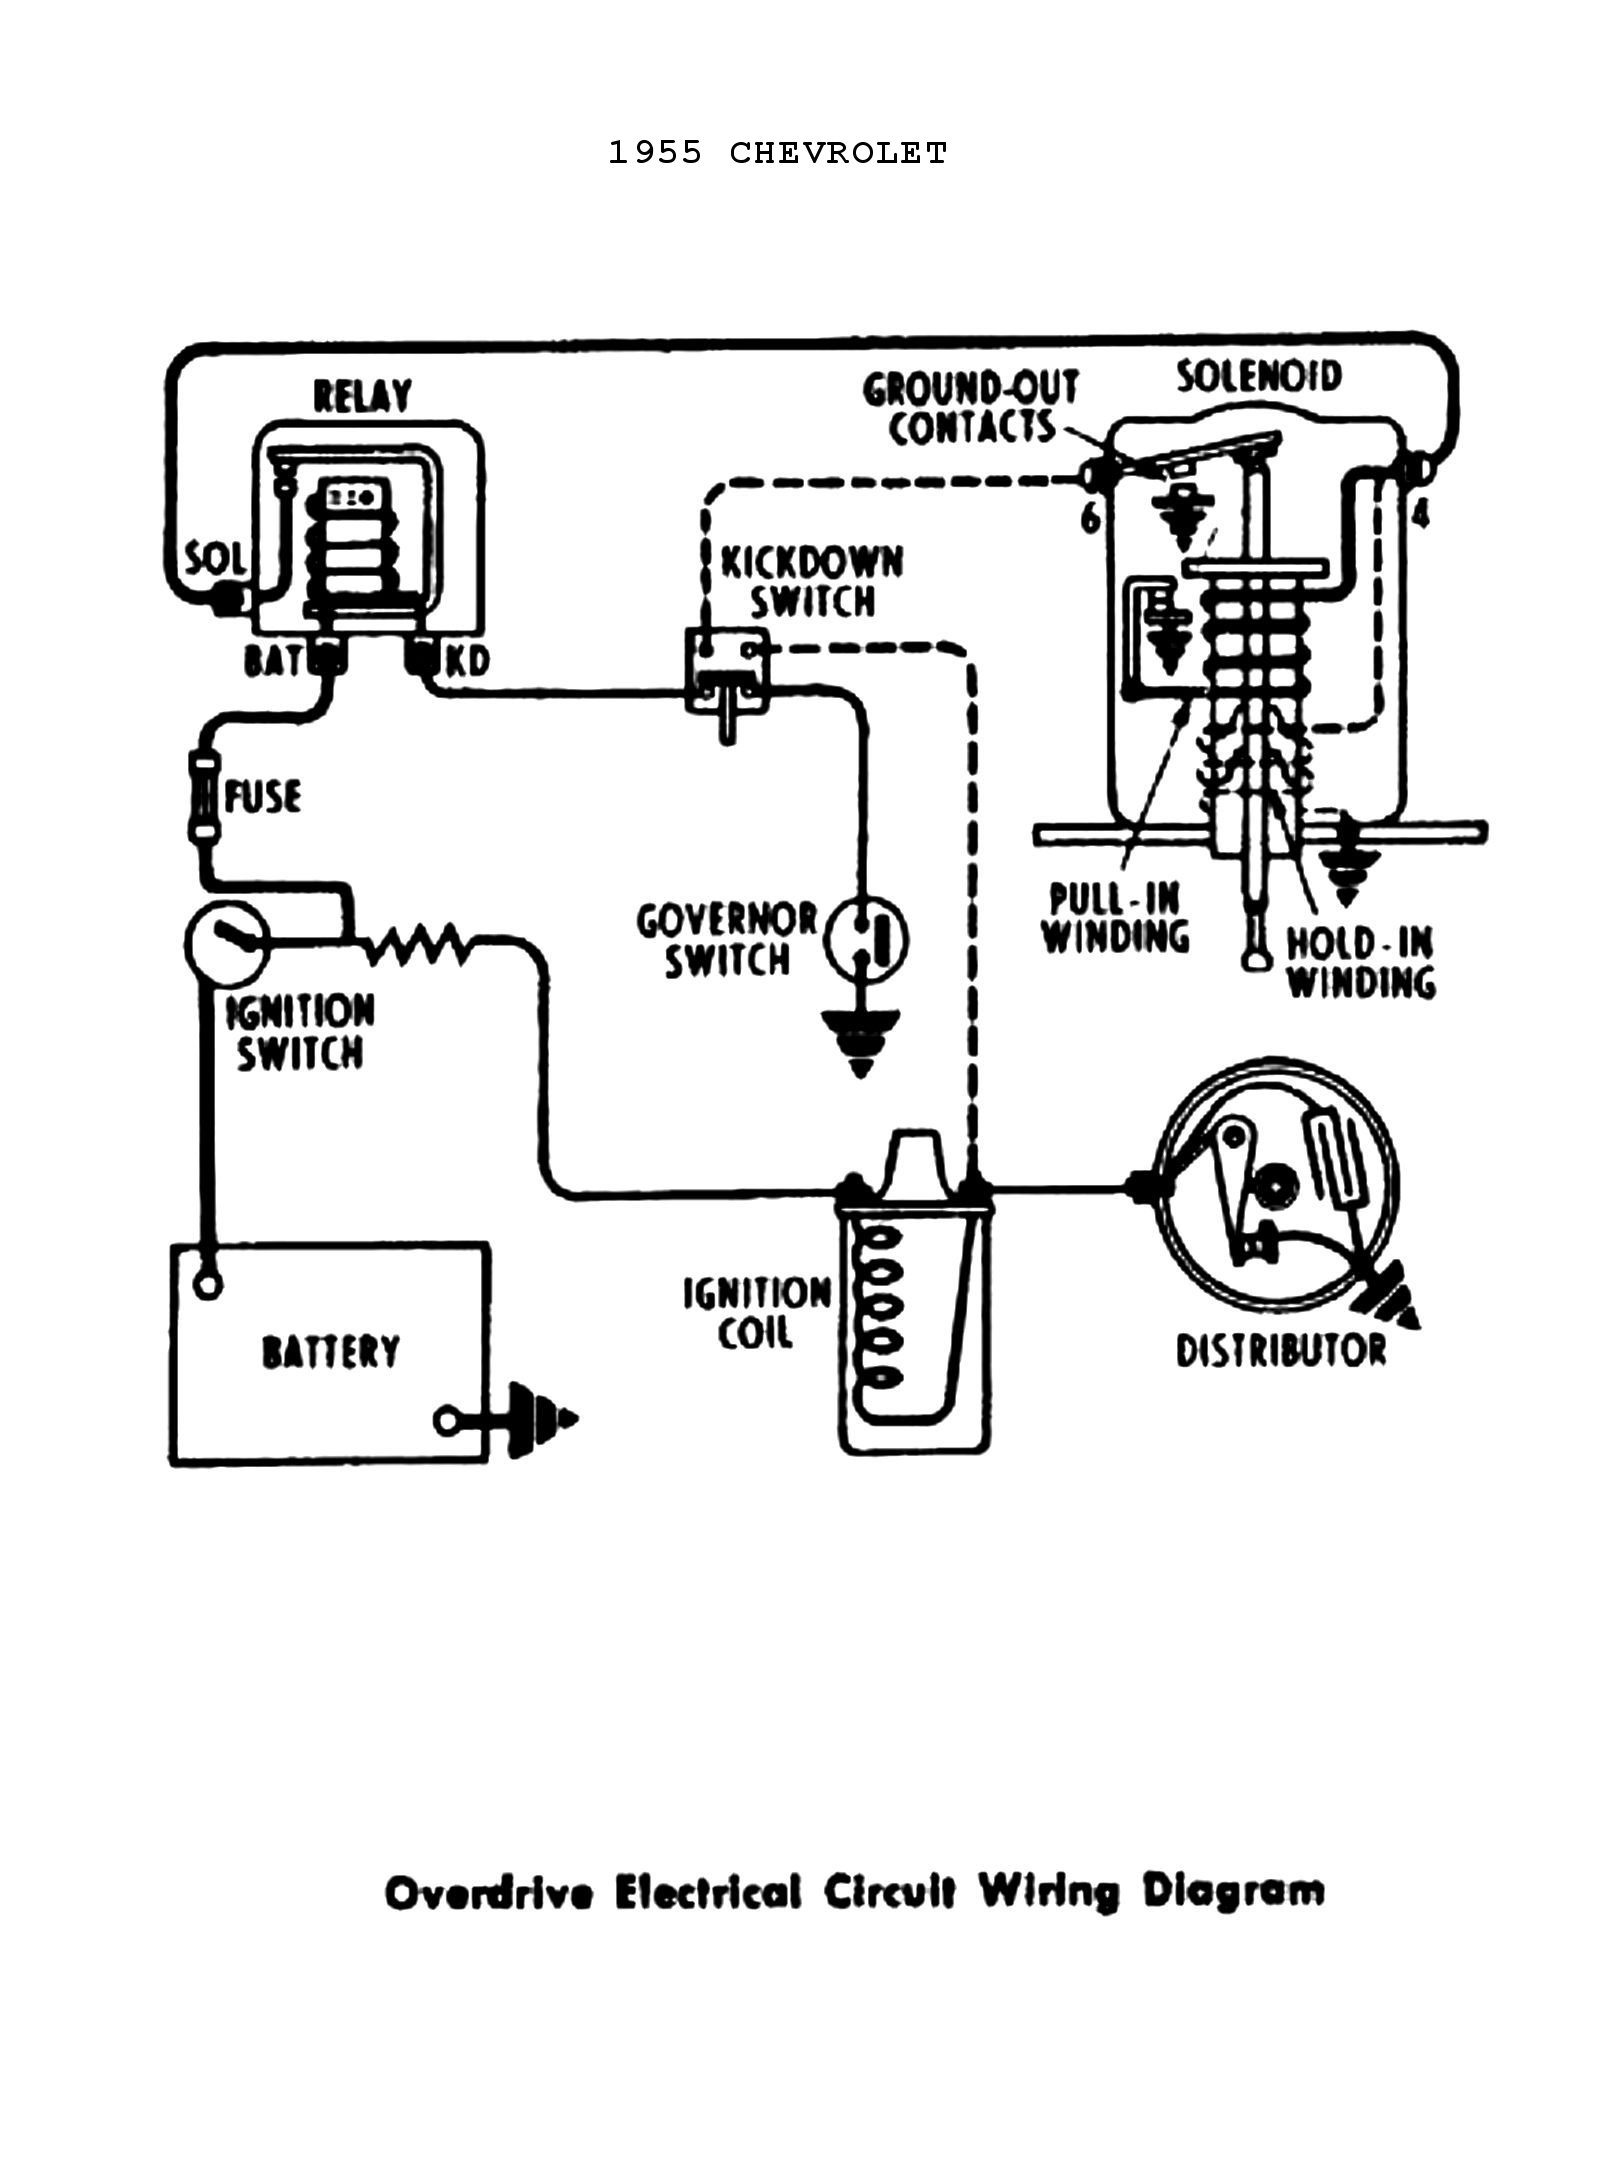 55odtrans1 chevy wiring diagrams distributor wiring diagram at reclaimingppi.co